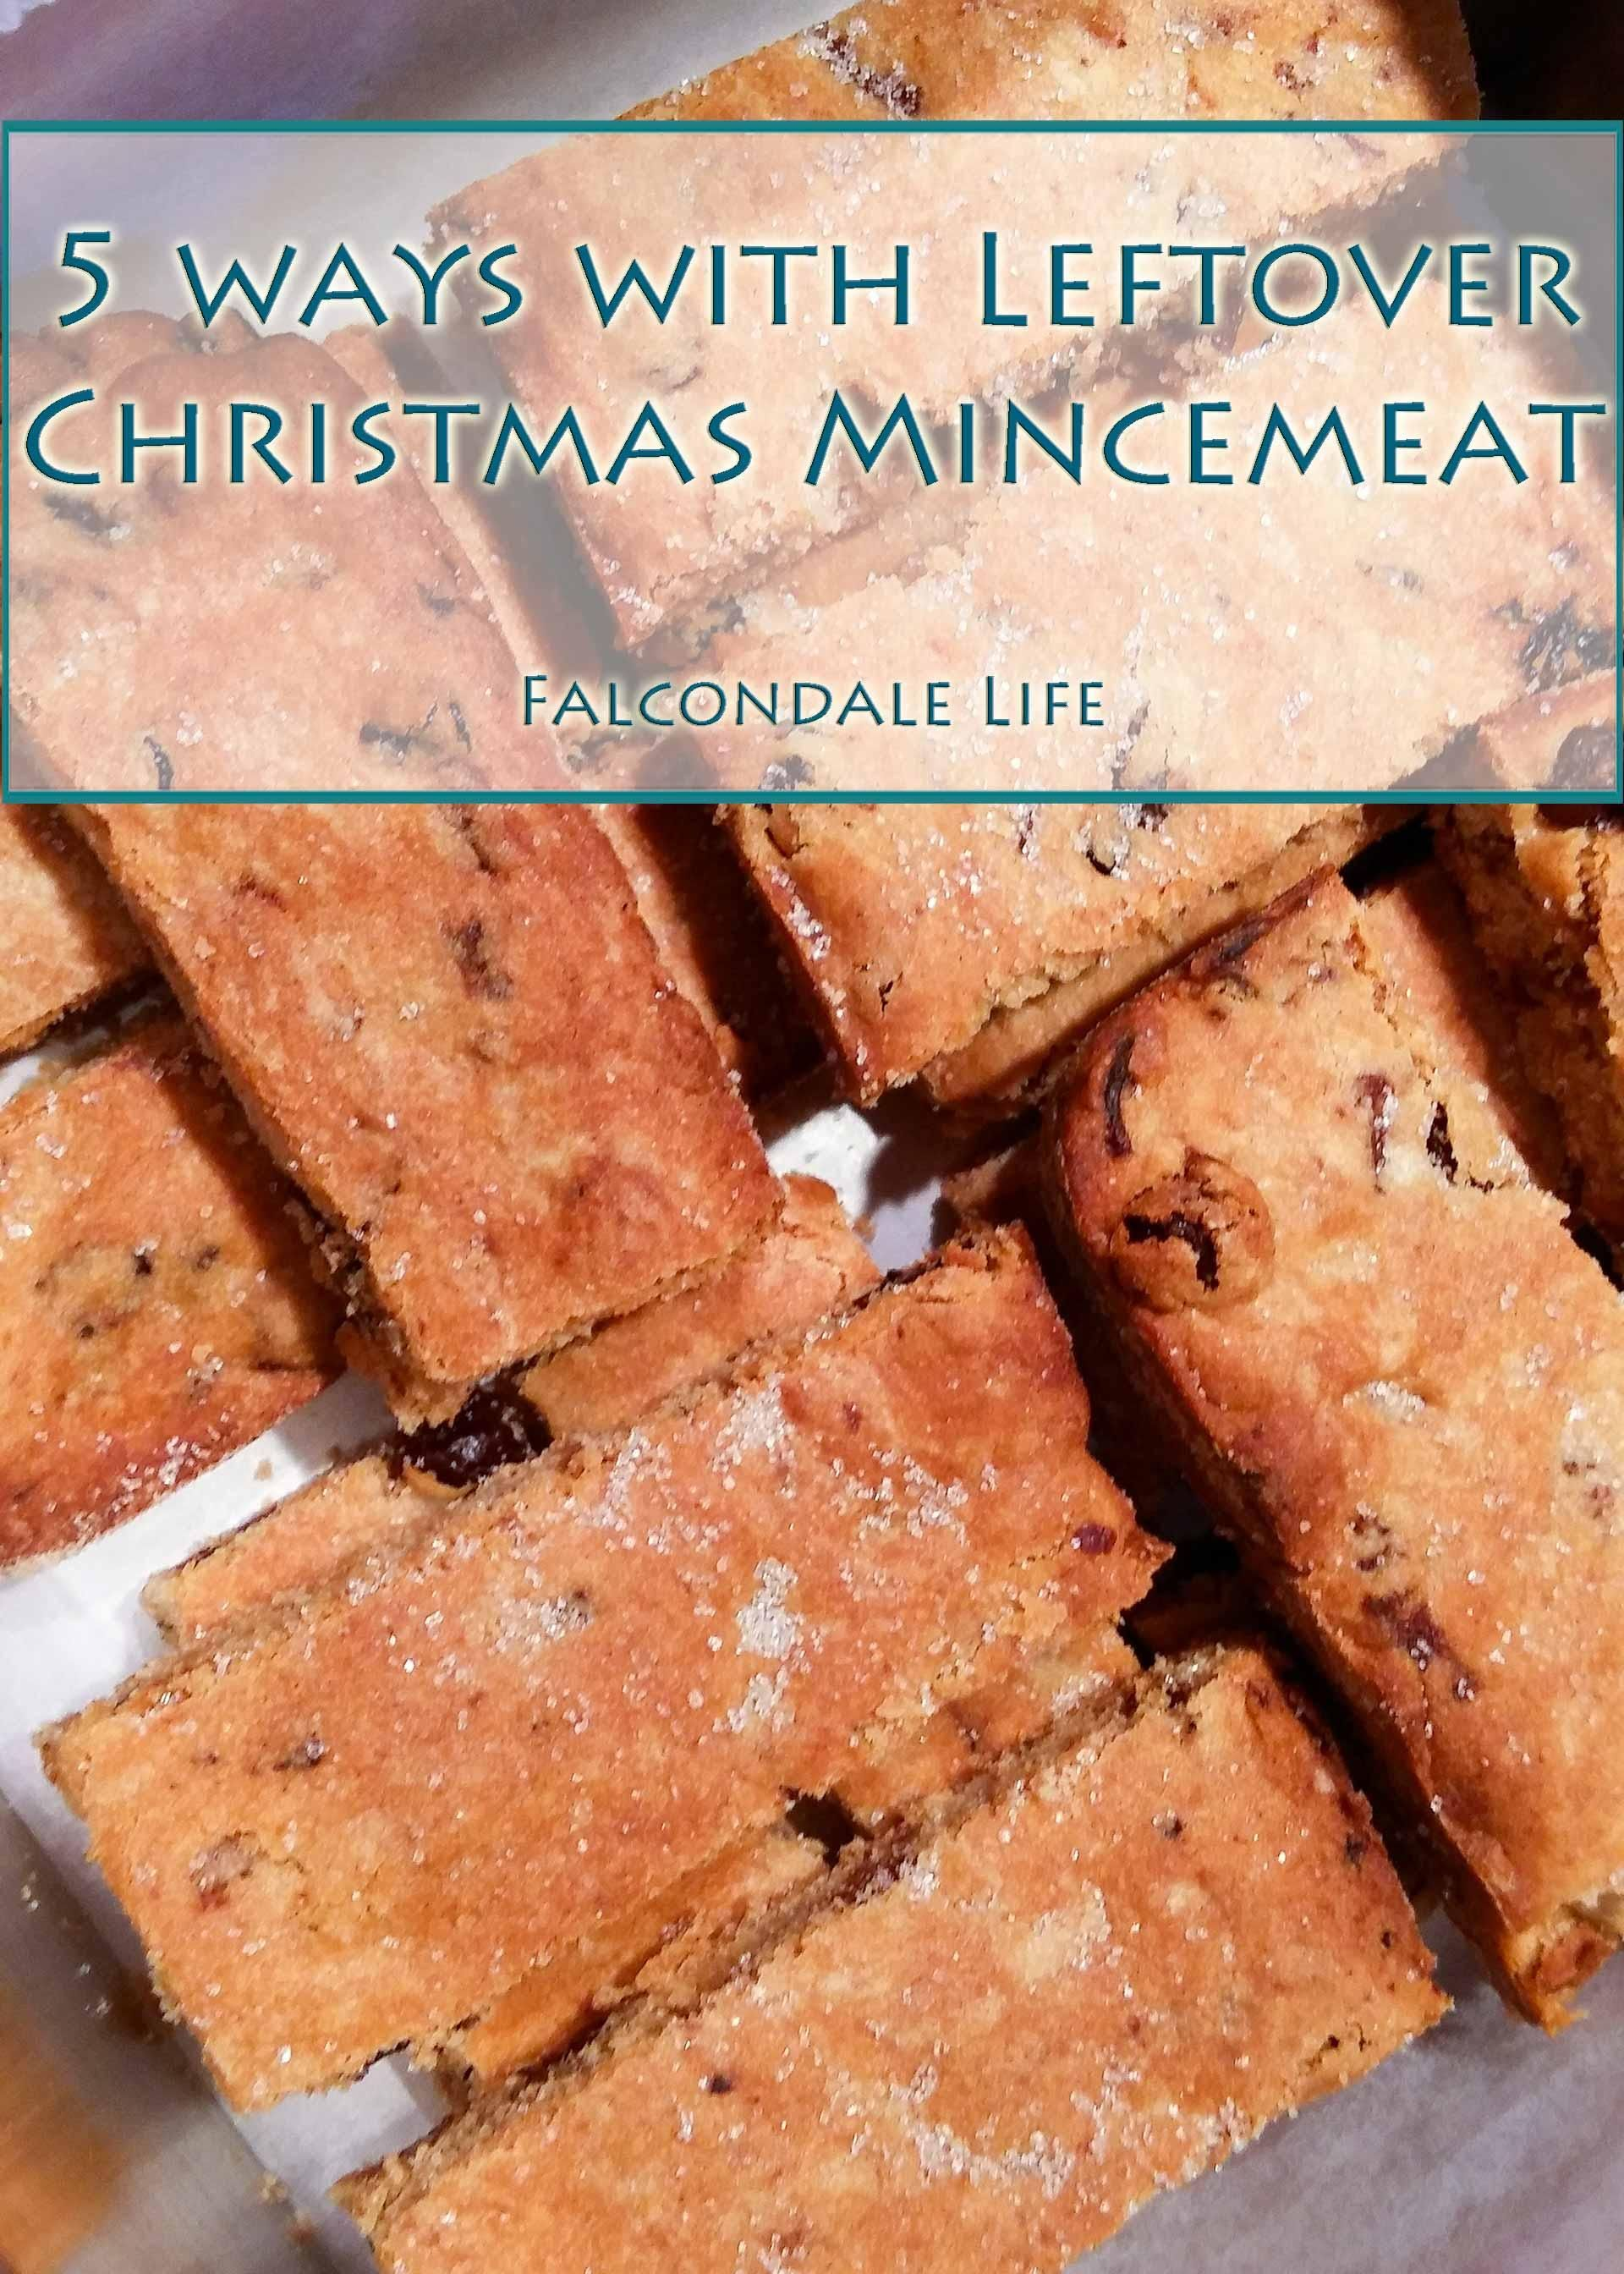 5 ways with leftover christmas mincemeat shortbread recipes 5 ways with leftover christmas mincemeat shortbread recipesmincemeatchristmas foodsfood forumfinder Image collections